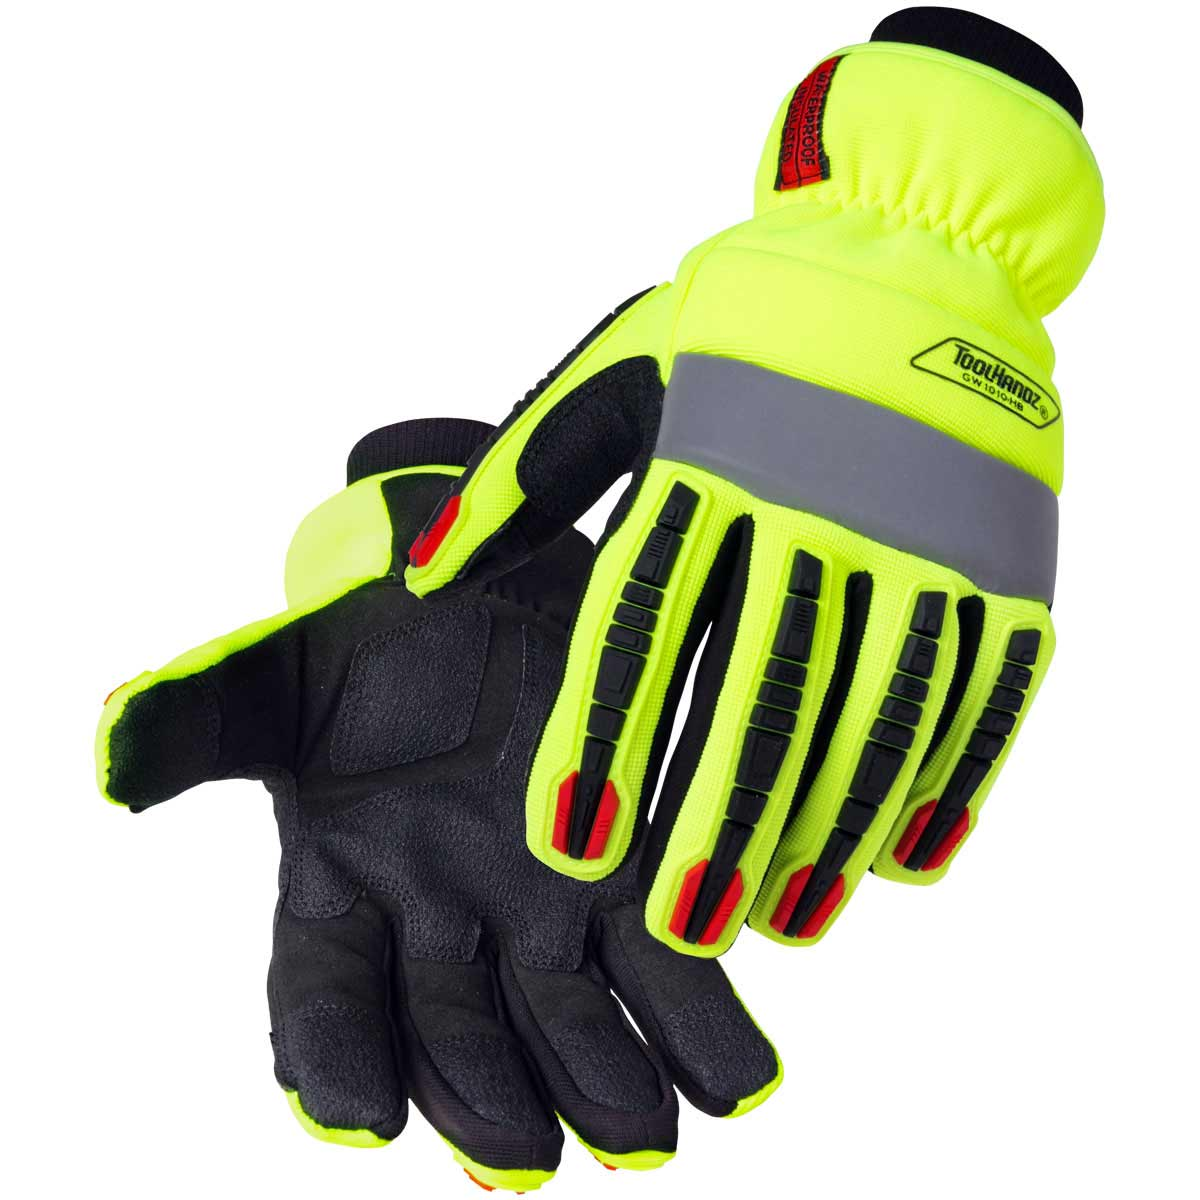 TOOLHANDZ HI-VIS SYNTHETIC LEATHER WINTER GLOVES. Pack 6. X Large. GW1010-HB-XLG